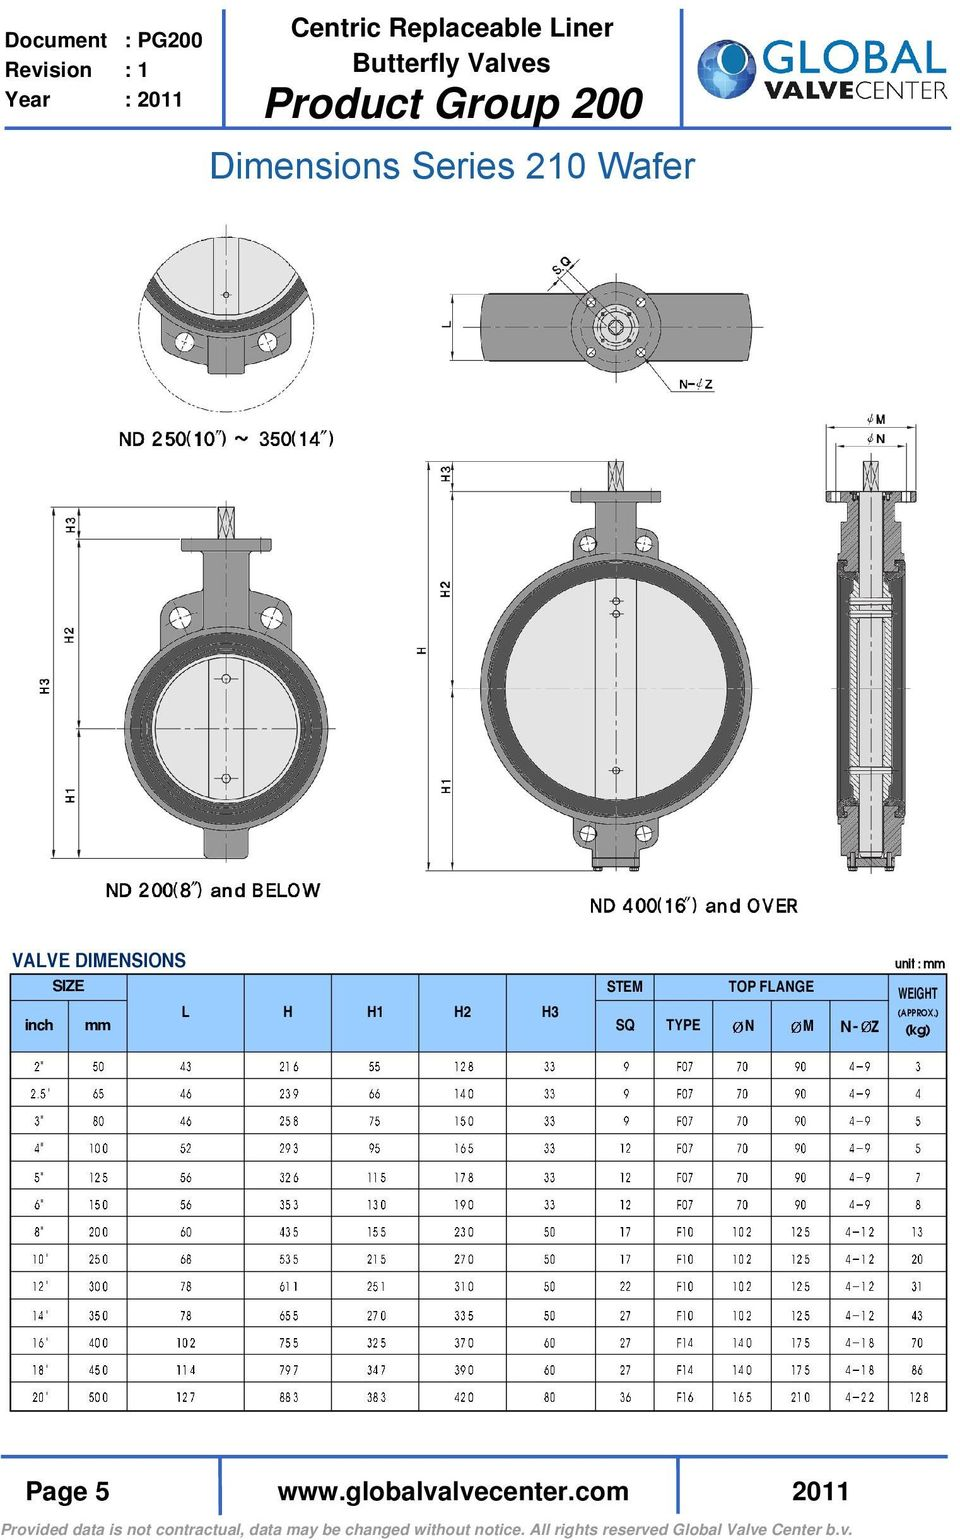 FLANGE SQ TYPE N M N- Z unit : mm WEIGHT